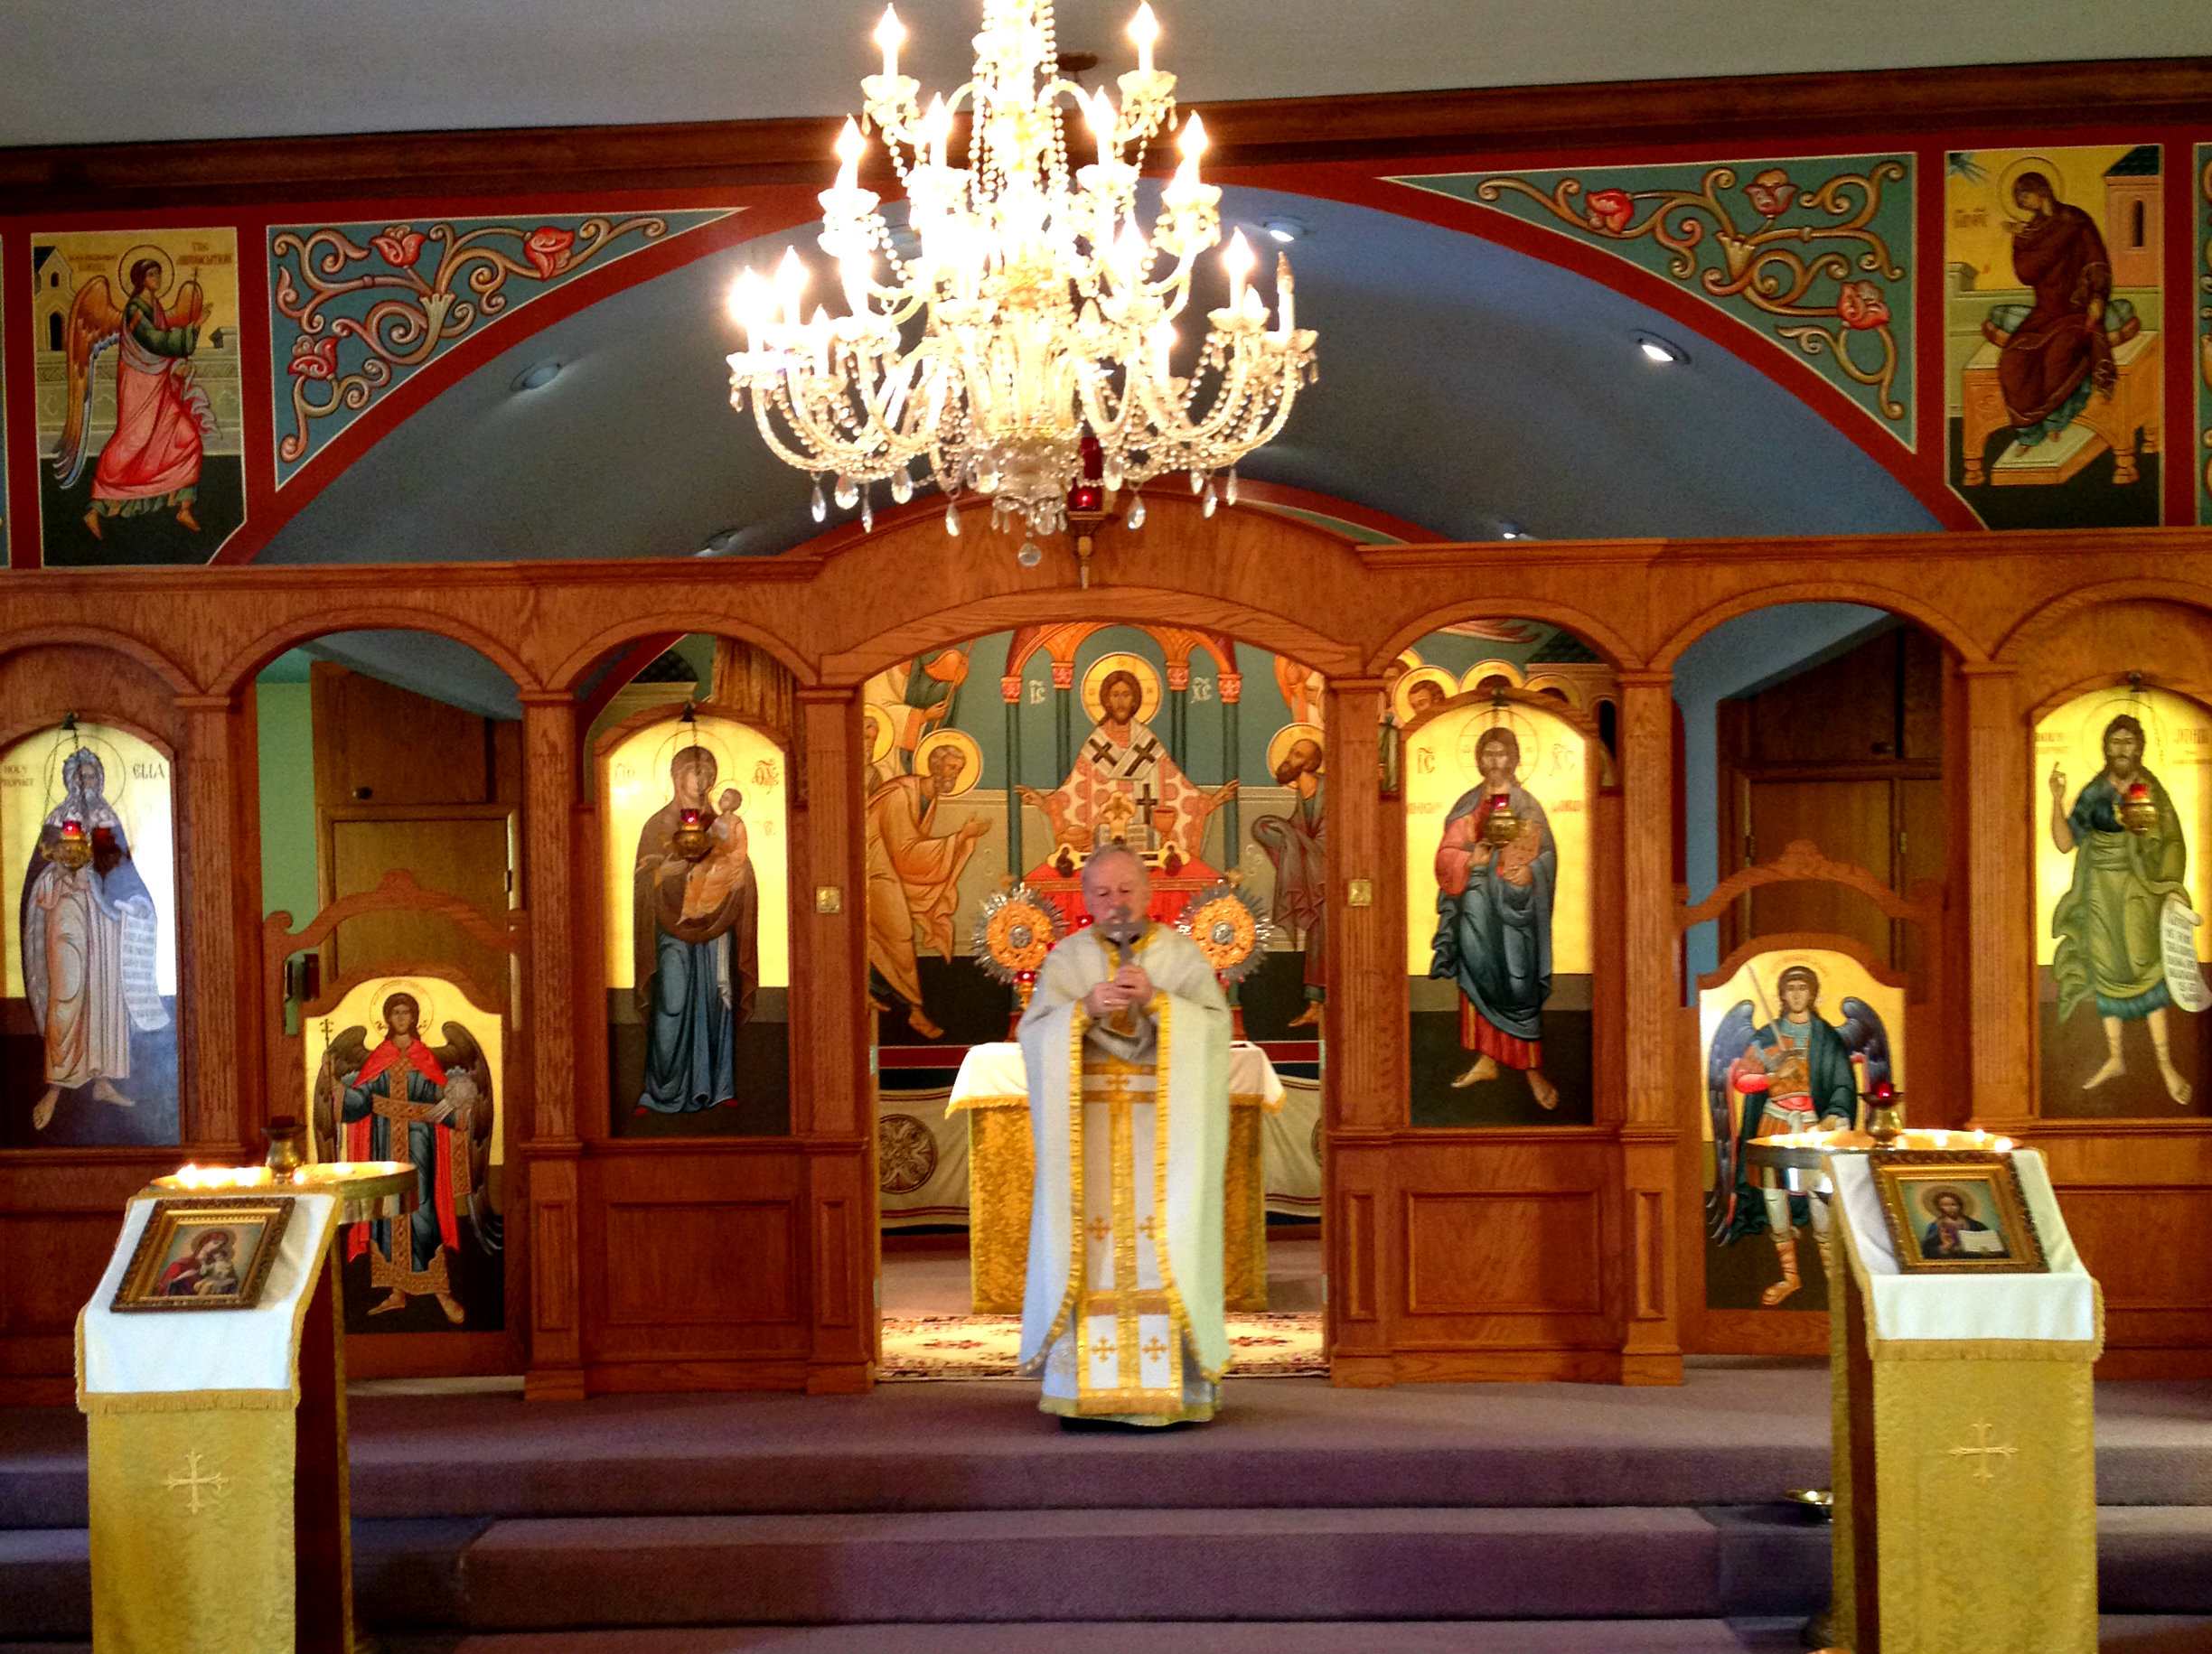 Archpriest Fr. Don Anthony Freude blessing the parishioners after Divine Liturgy celebrated on 9/29/13.